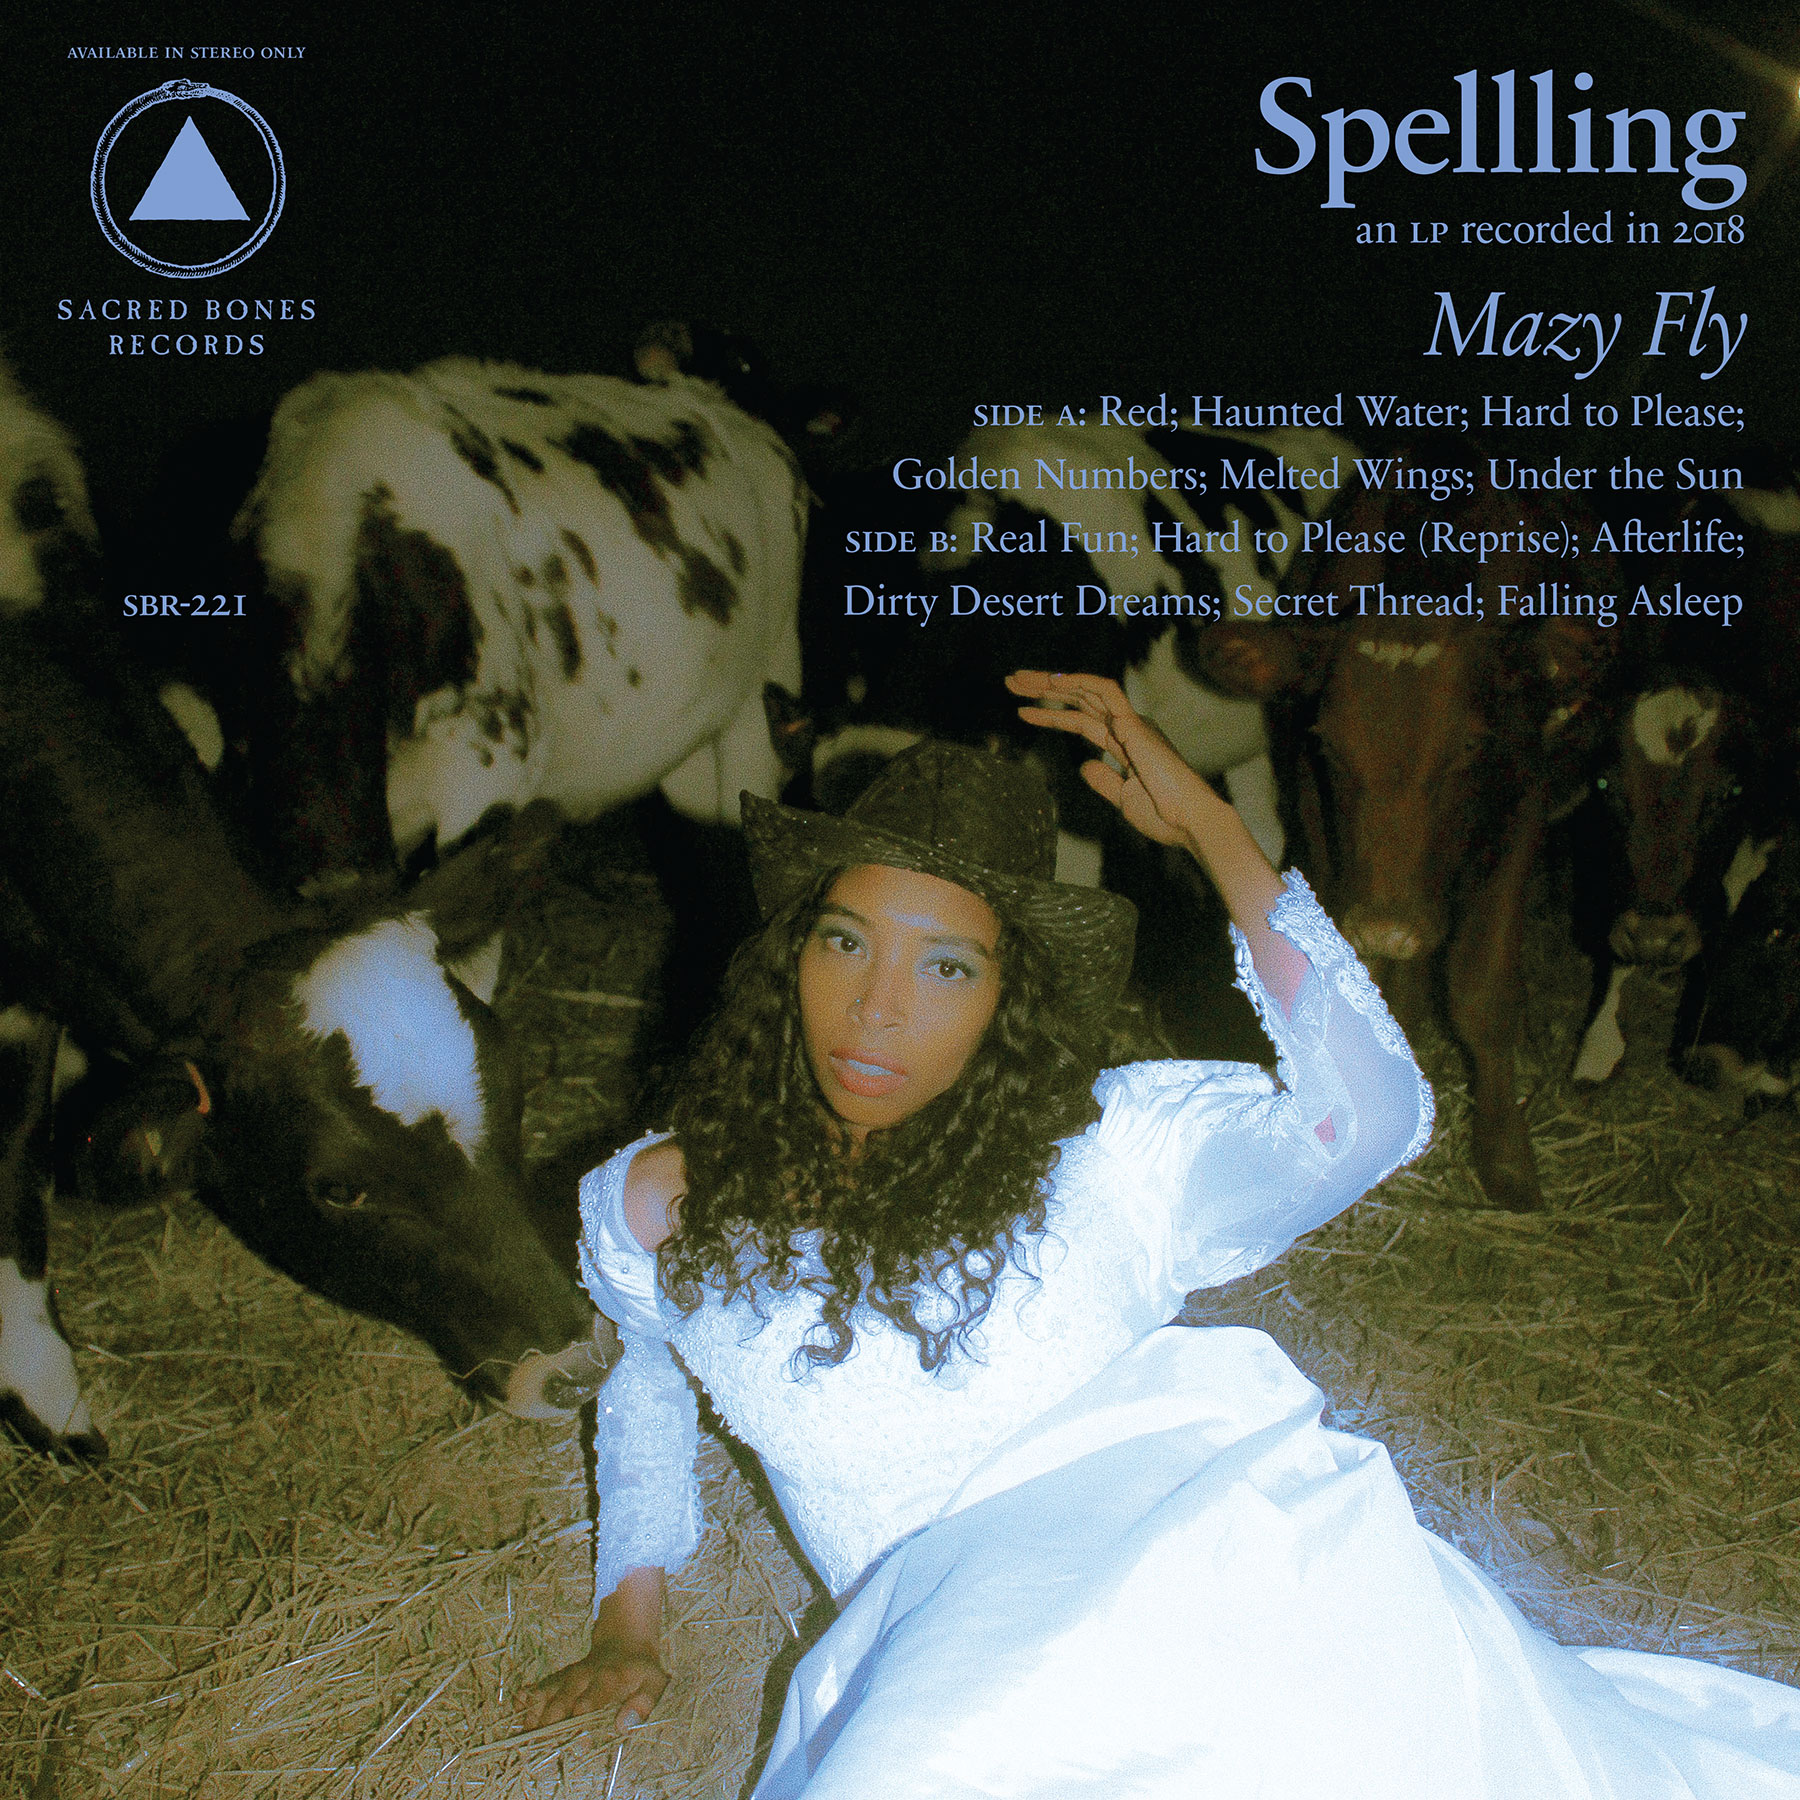 SPELLLING announces Mazy Fly, her debut album for Sacred Bones